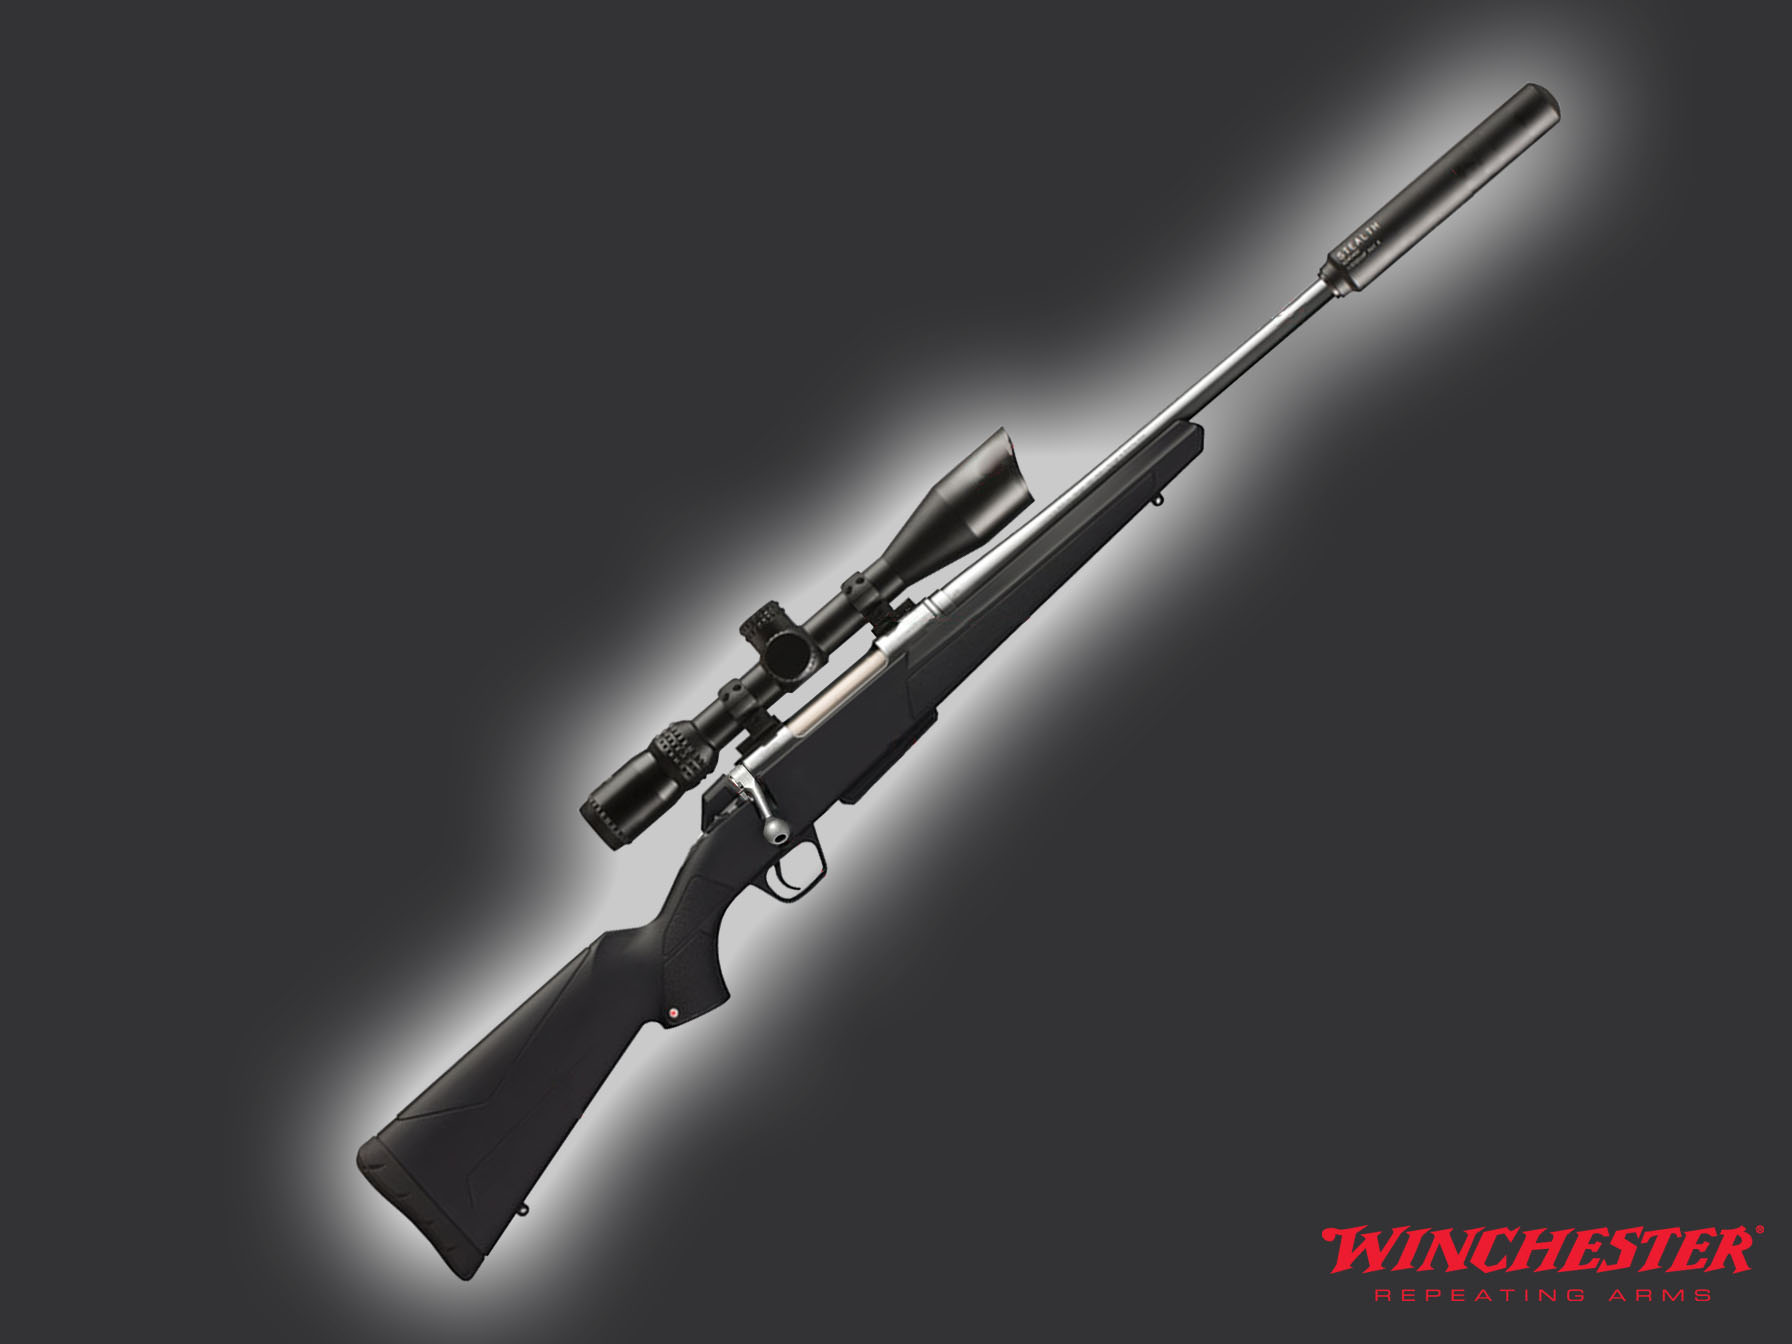 Winchester XPR Cerakote Suppressed Bolt Action Rifle Package 32 Rem